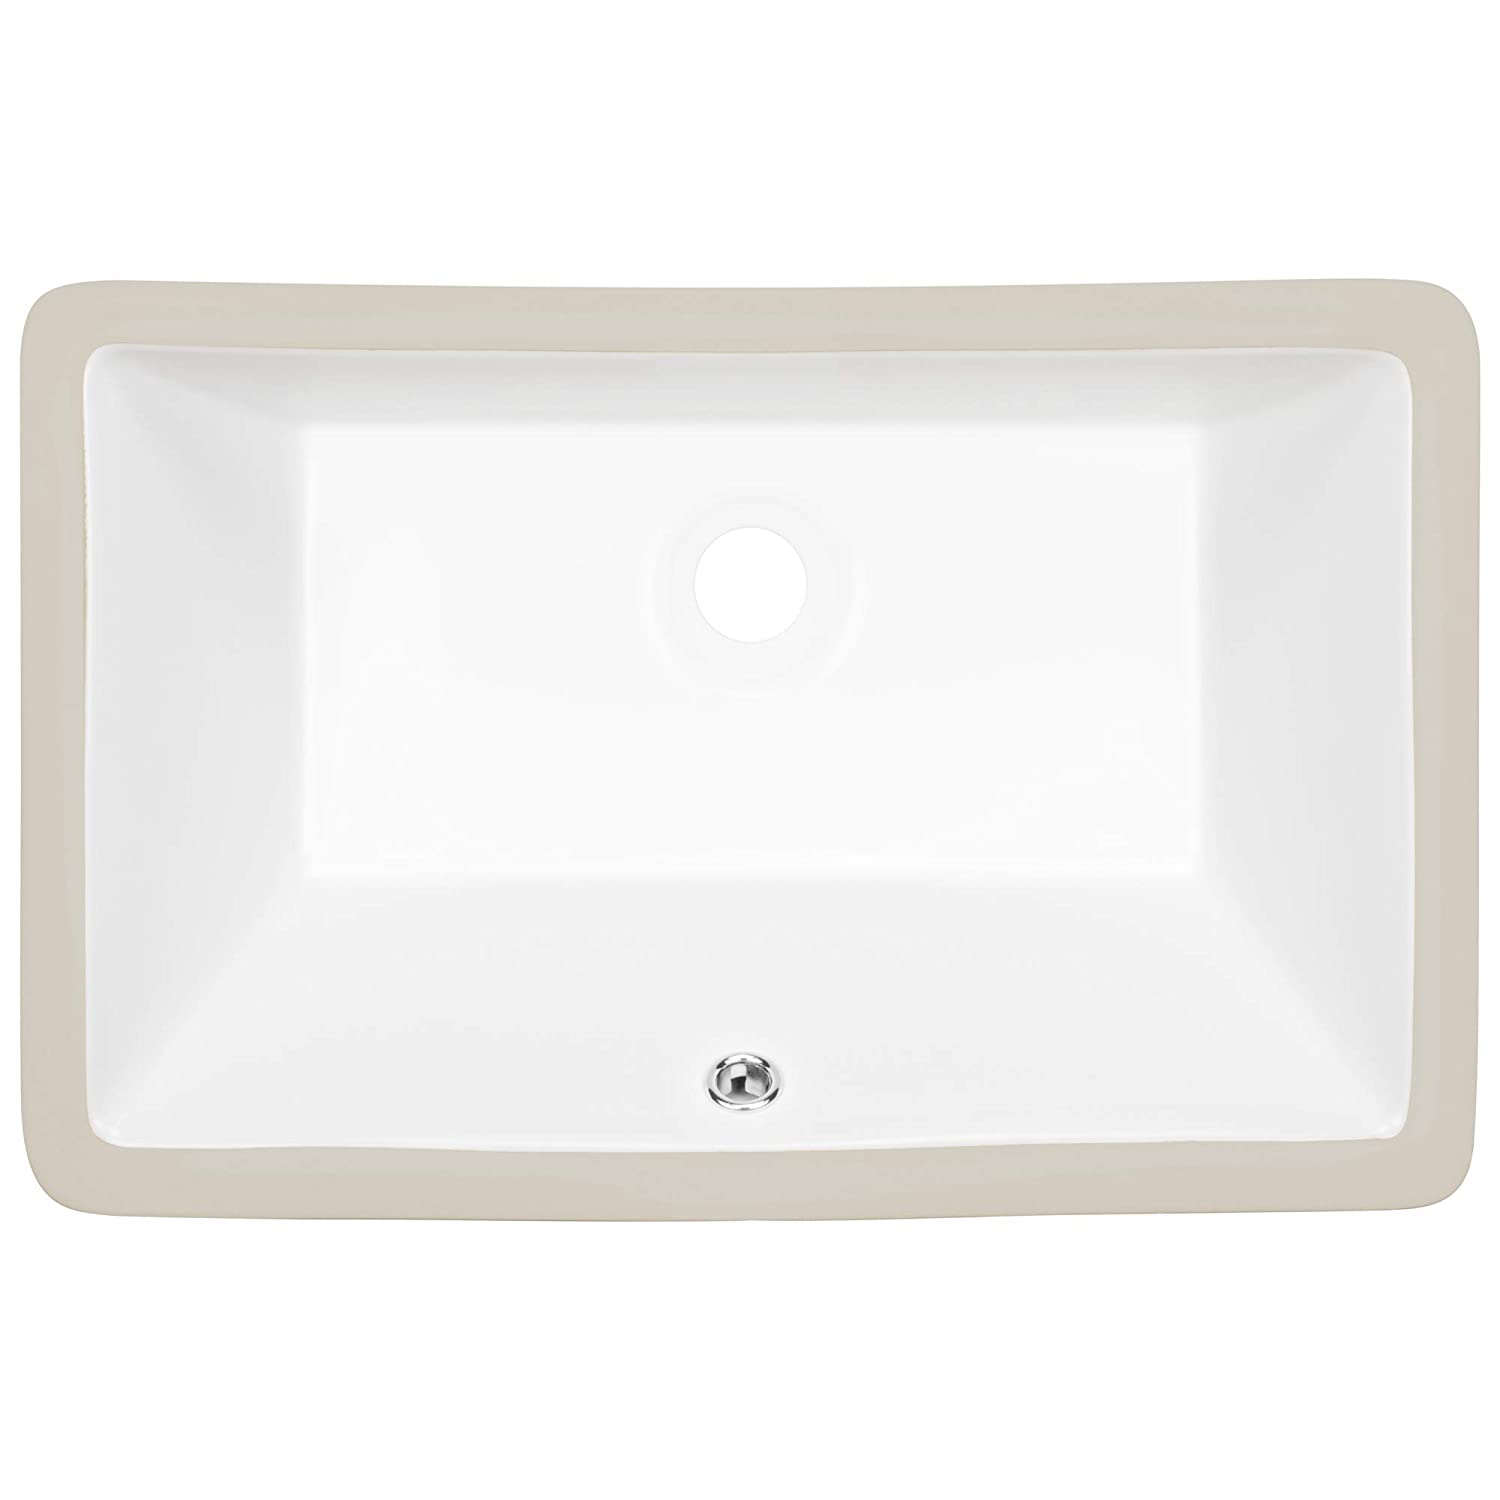 Hahn Chef Series SS004 32-Inch Undermount 60 40 Double Bowl